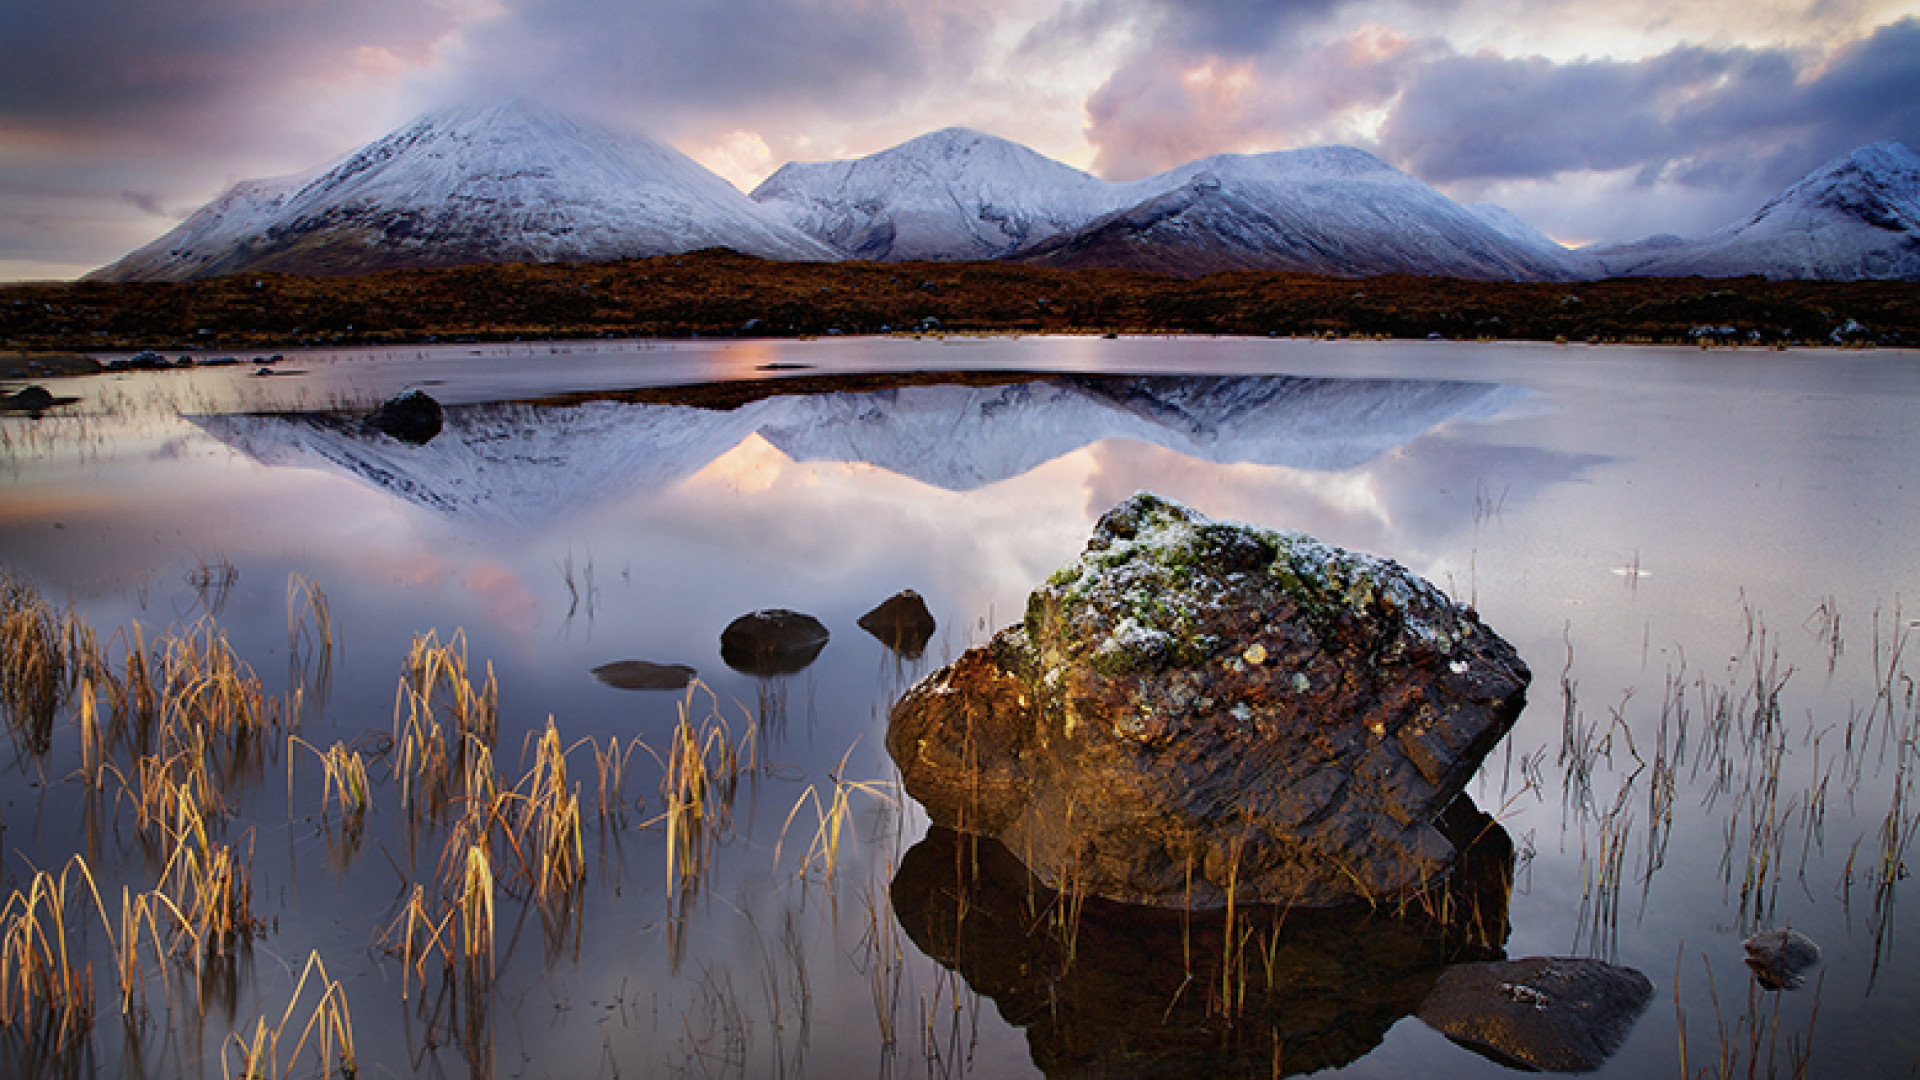 Alaistair-Swan,-The-Red-Cuillin,-Commended,-Classic-View,2012